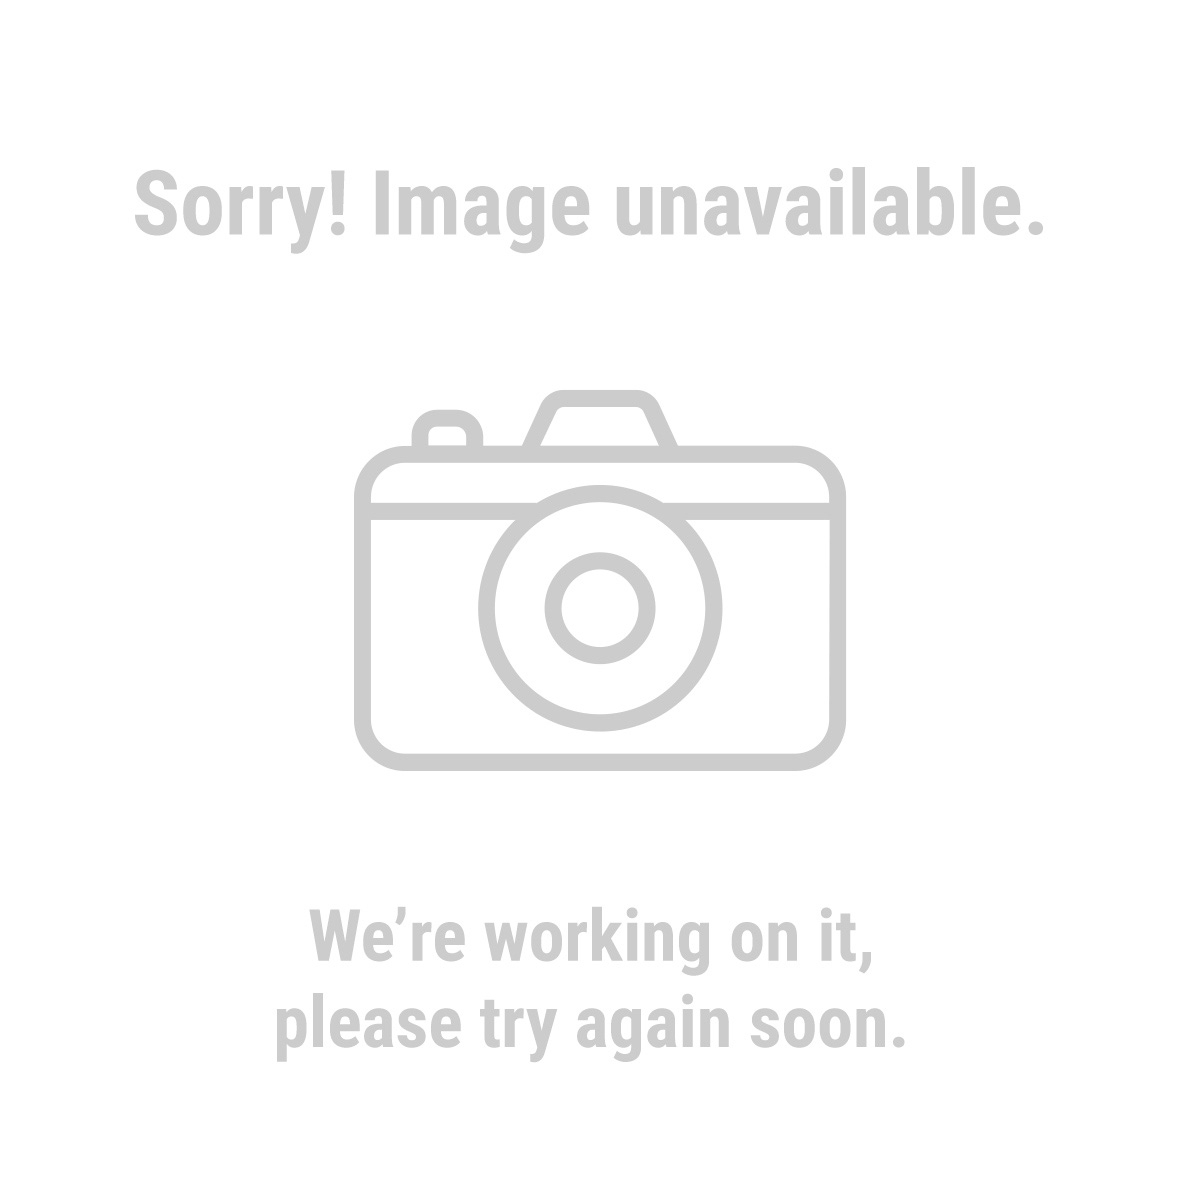 Portland® 62630 22 in. Electric Hedge Trimmer